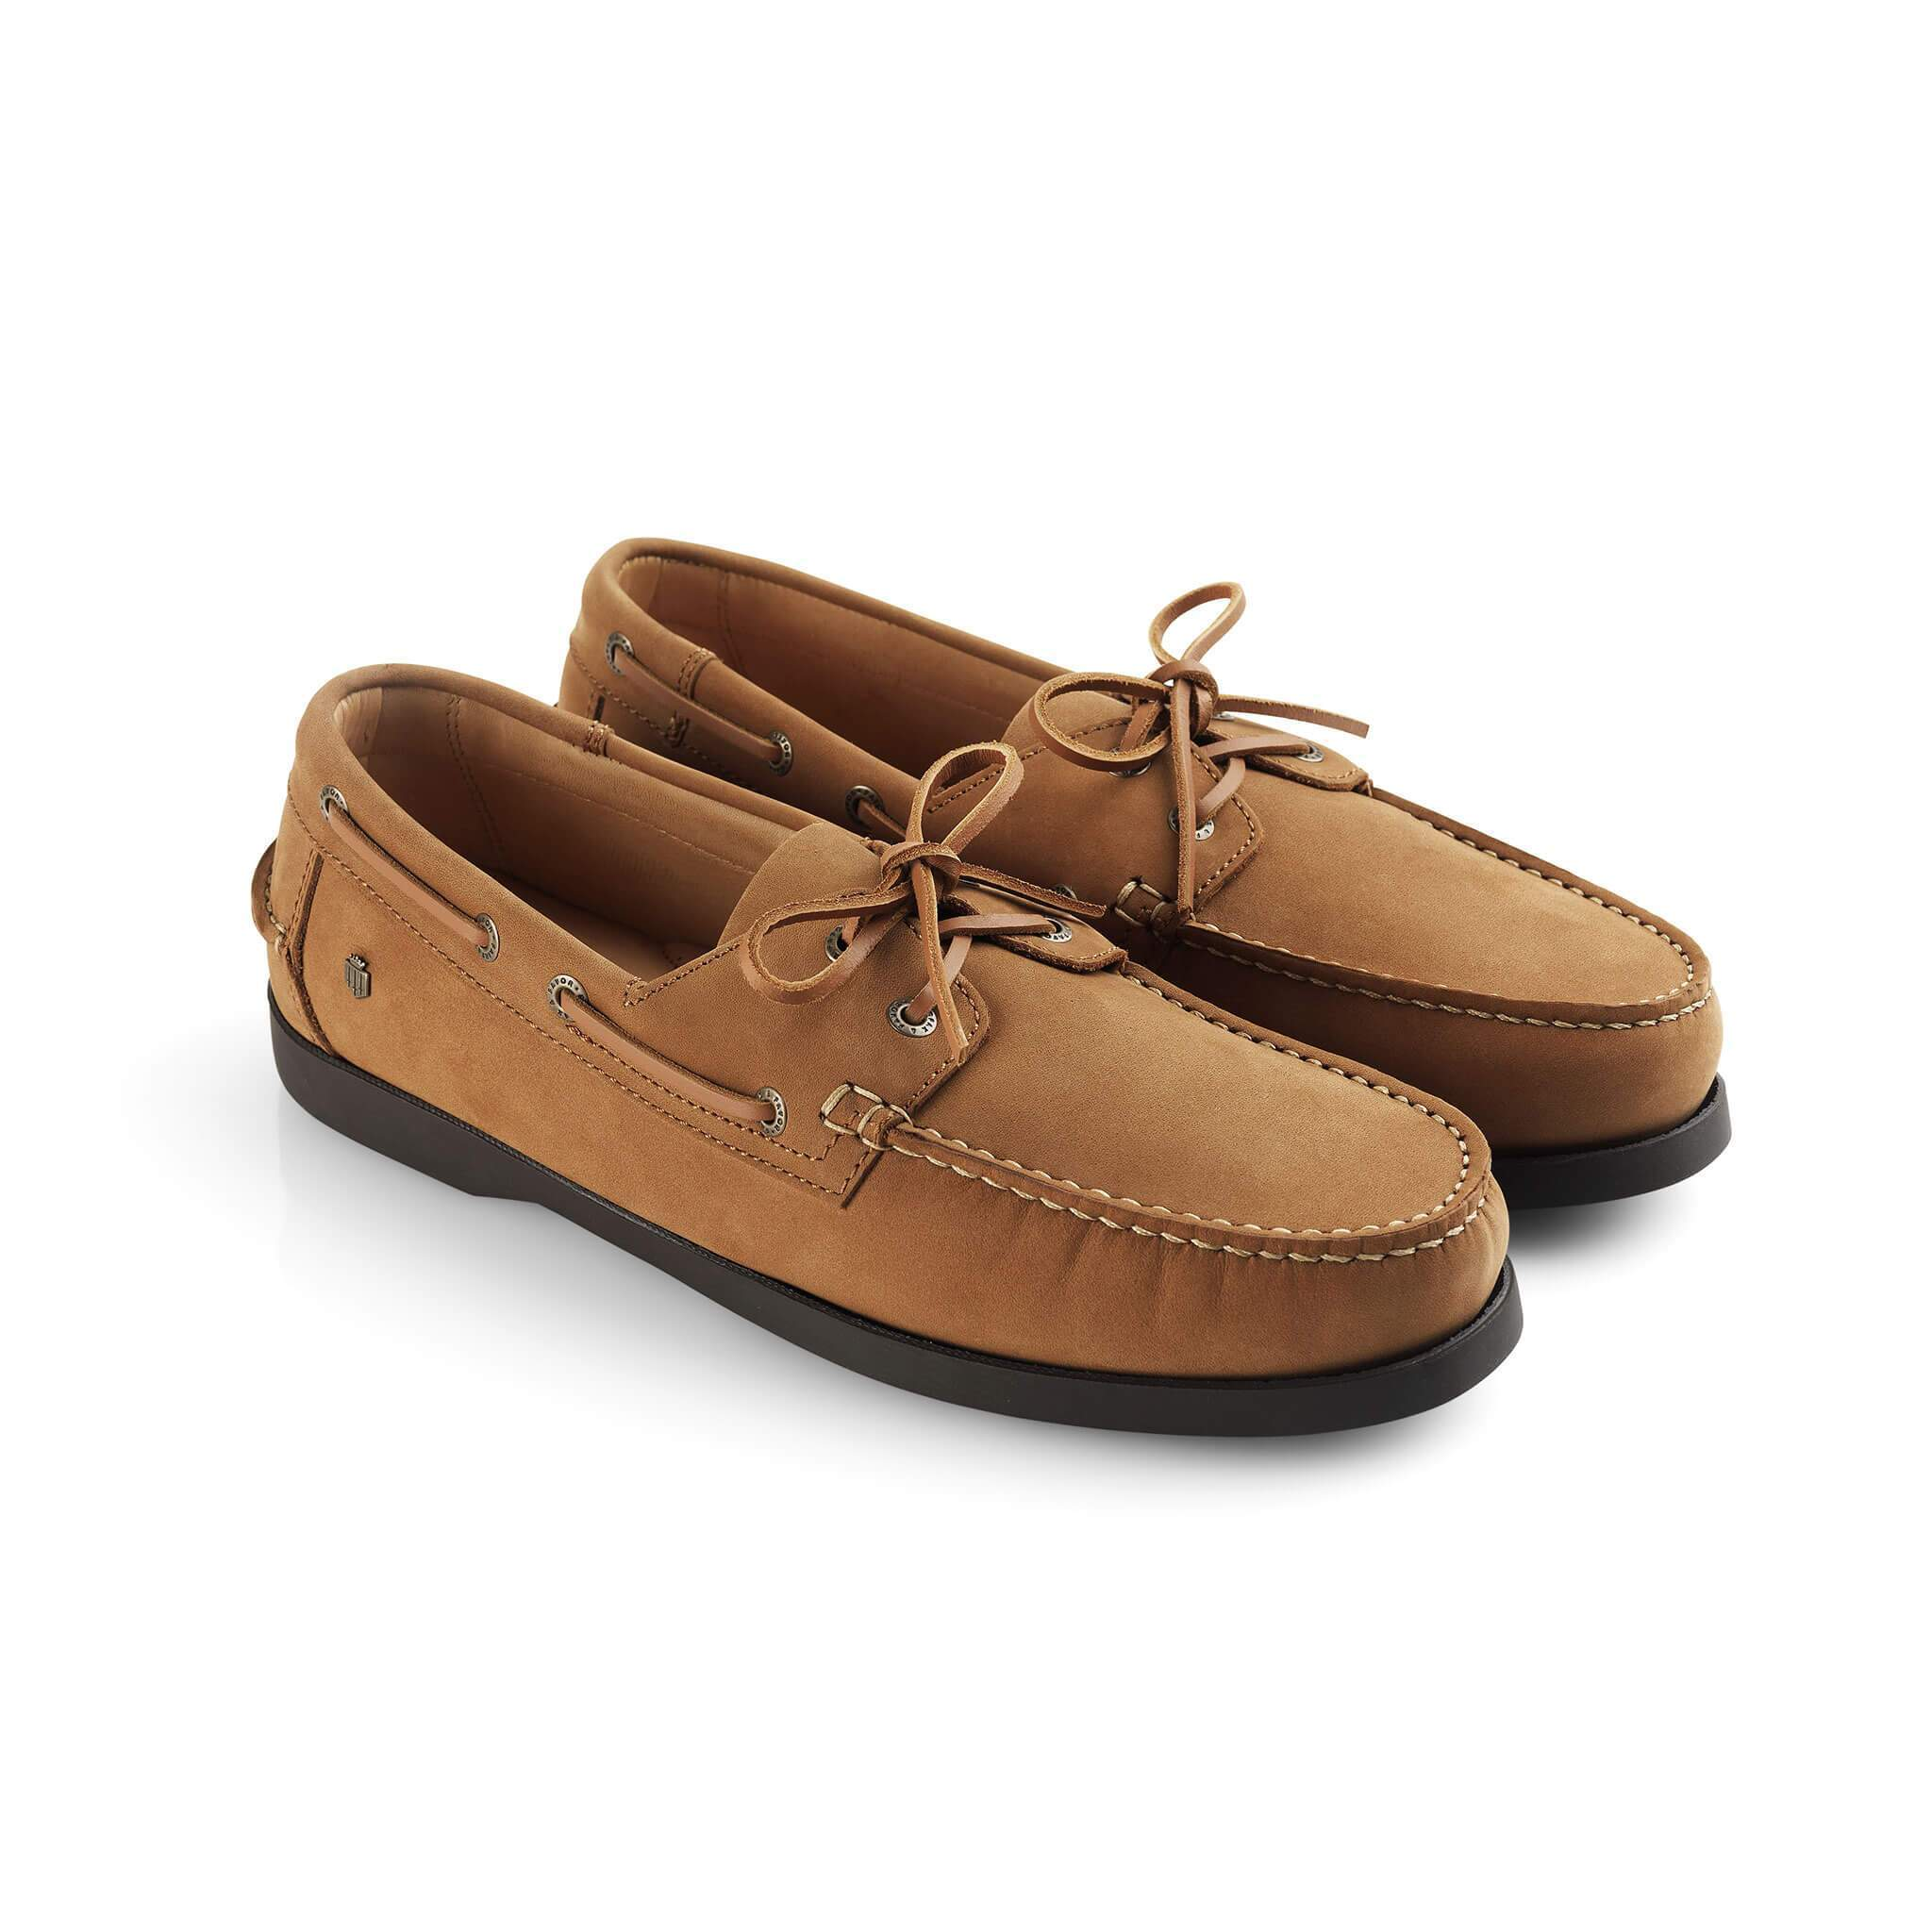 Padstow Mens Deck Shoes, sejlersko, ruskind, lysebrun/tan